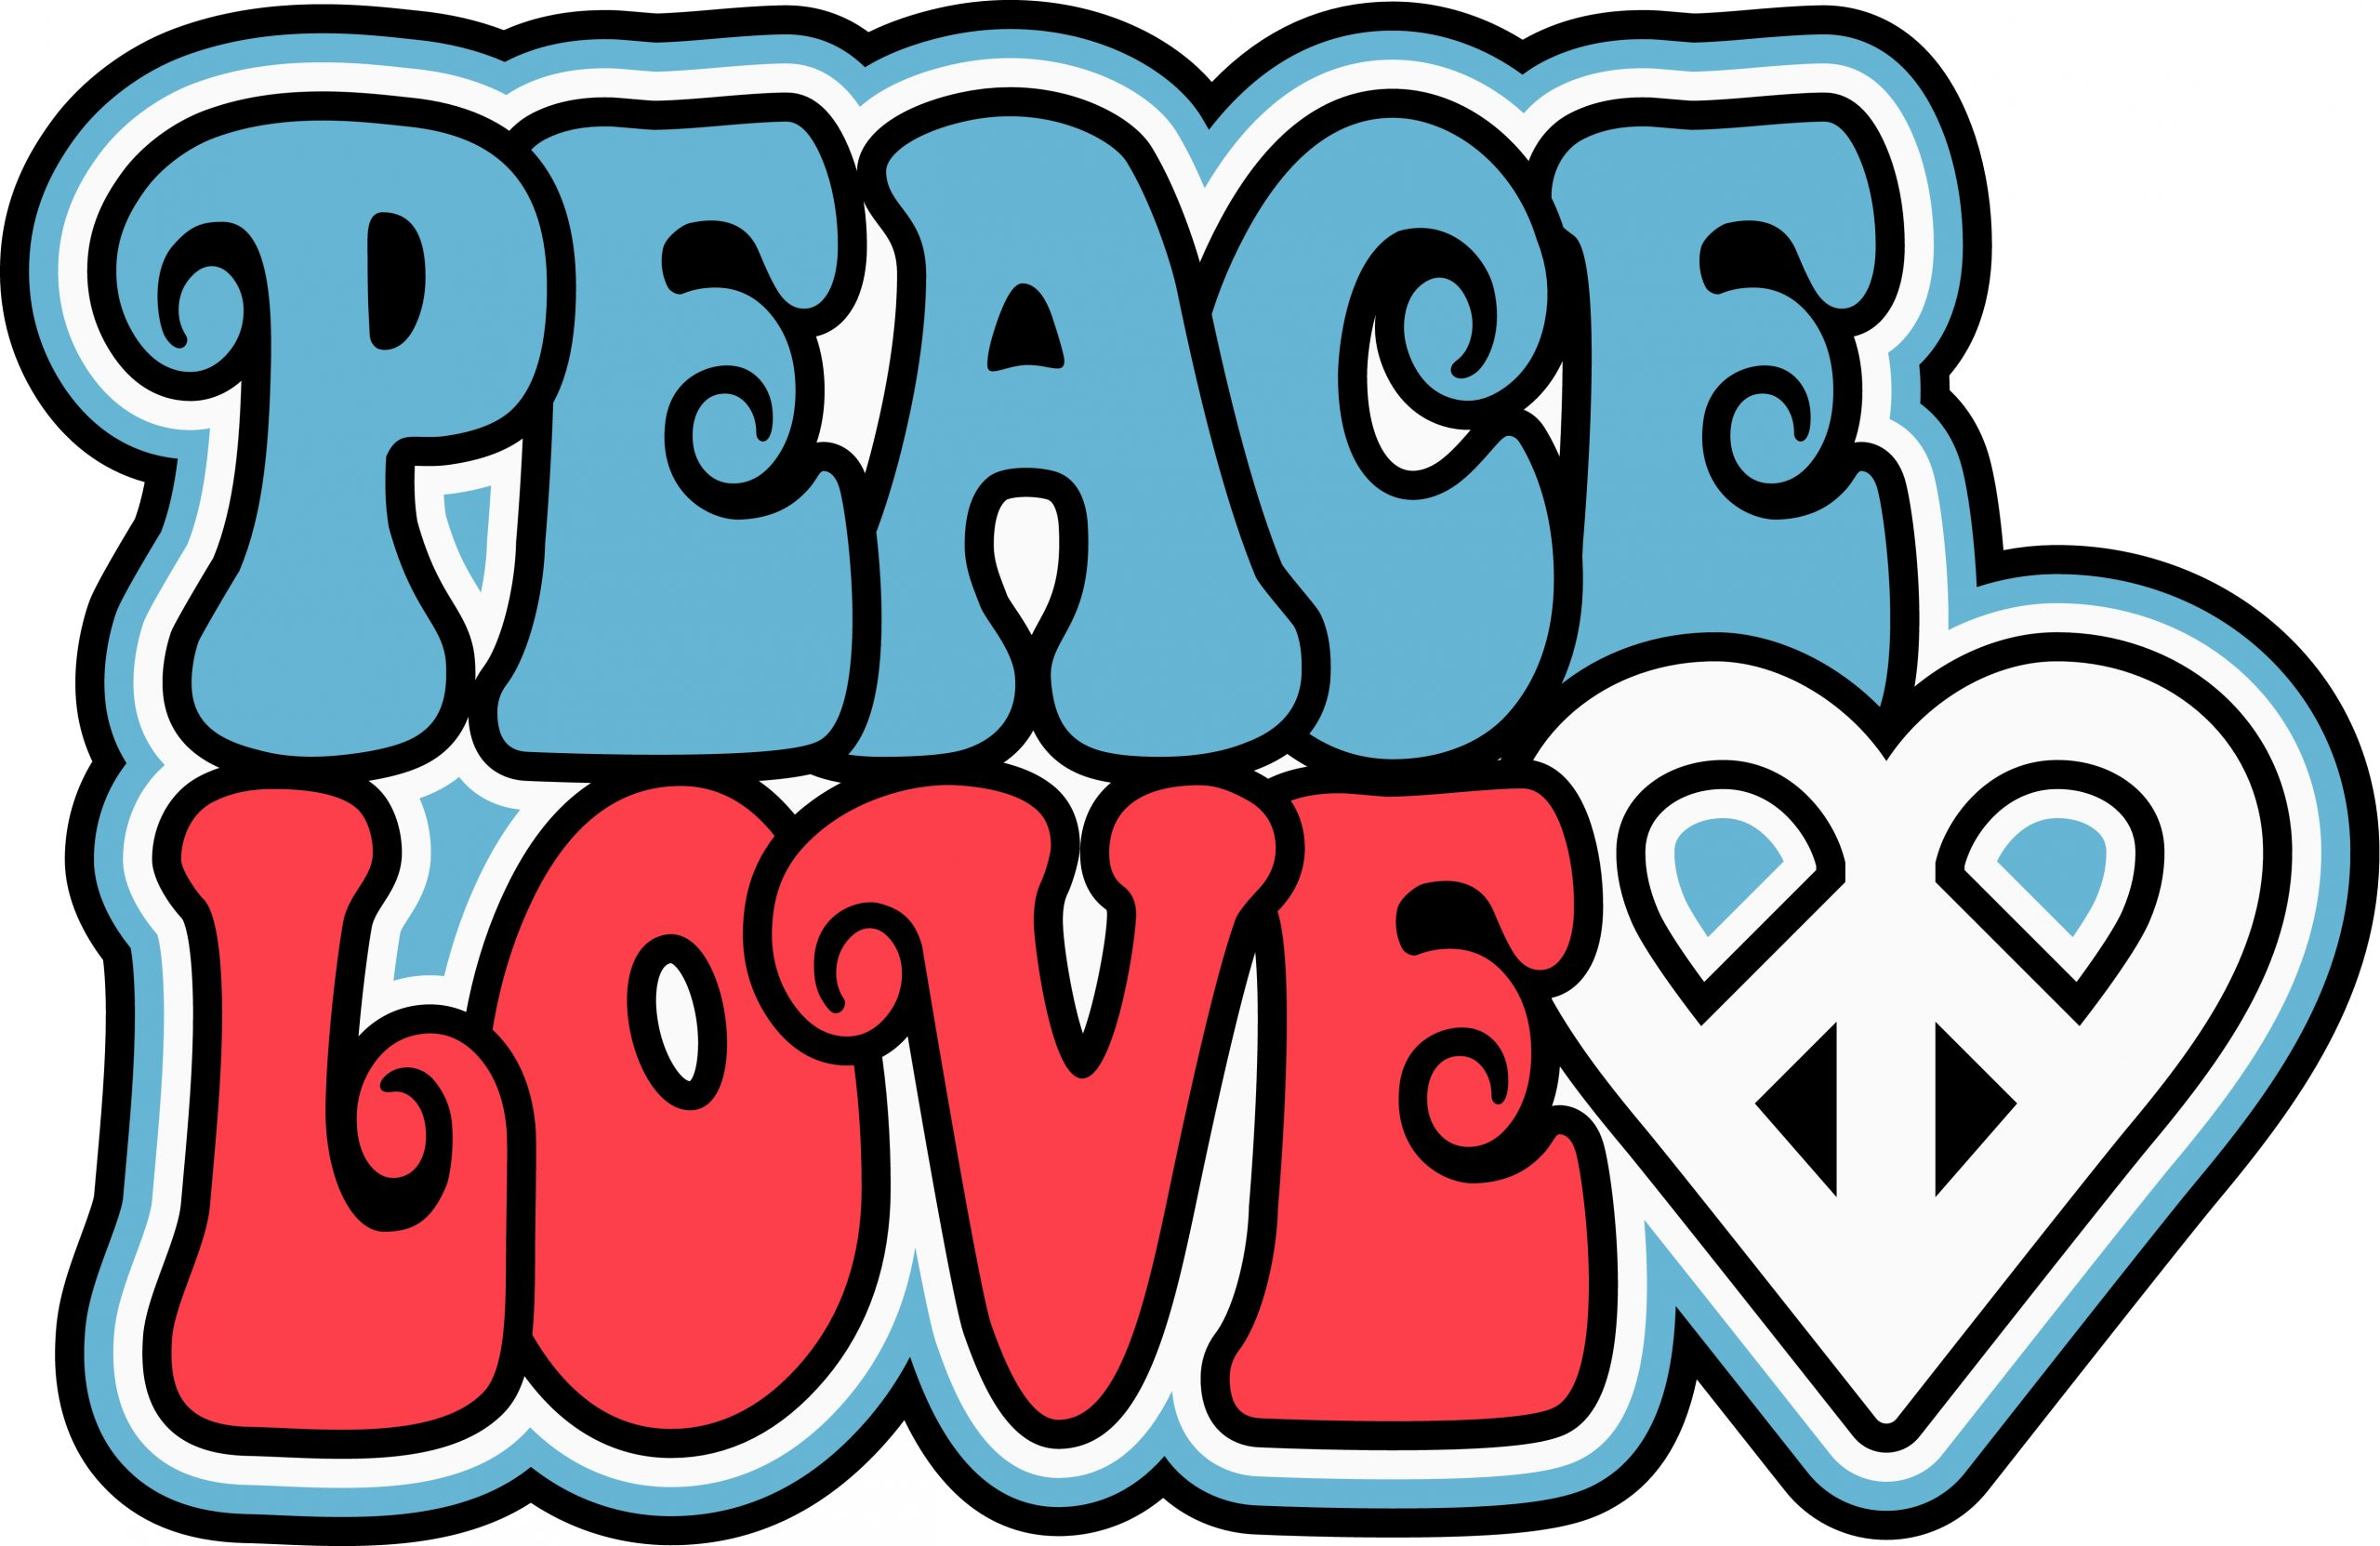 PEACE & LOVE, a new acronym for acute soft tissue injury and management